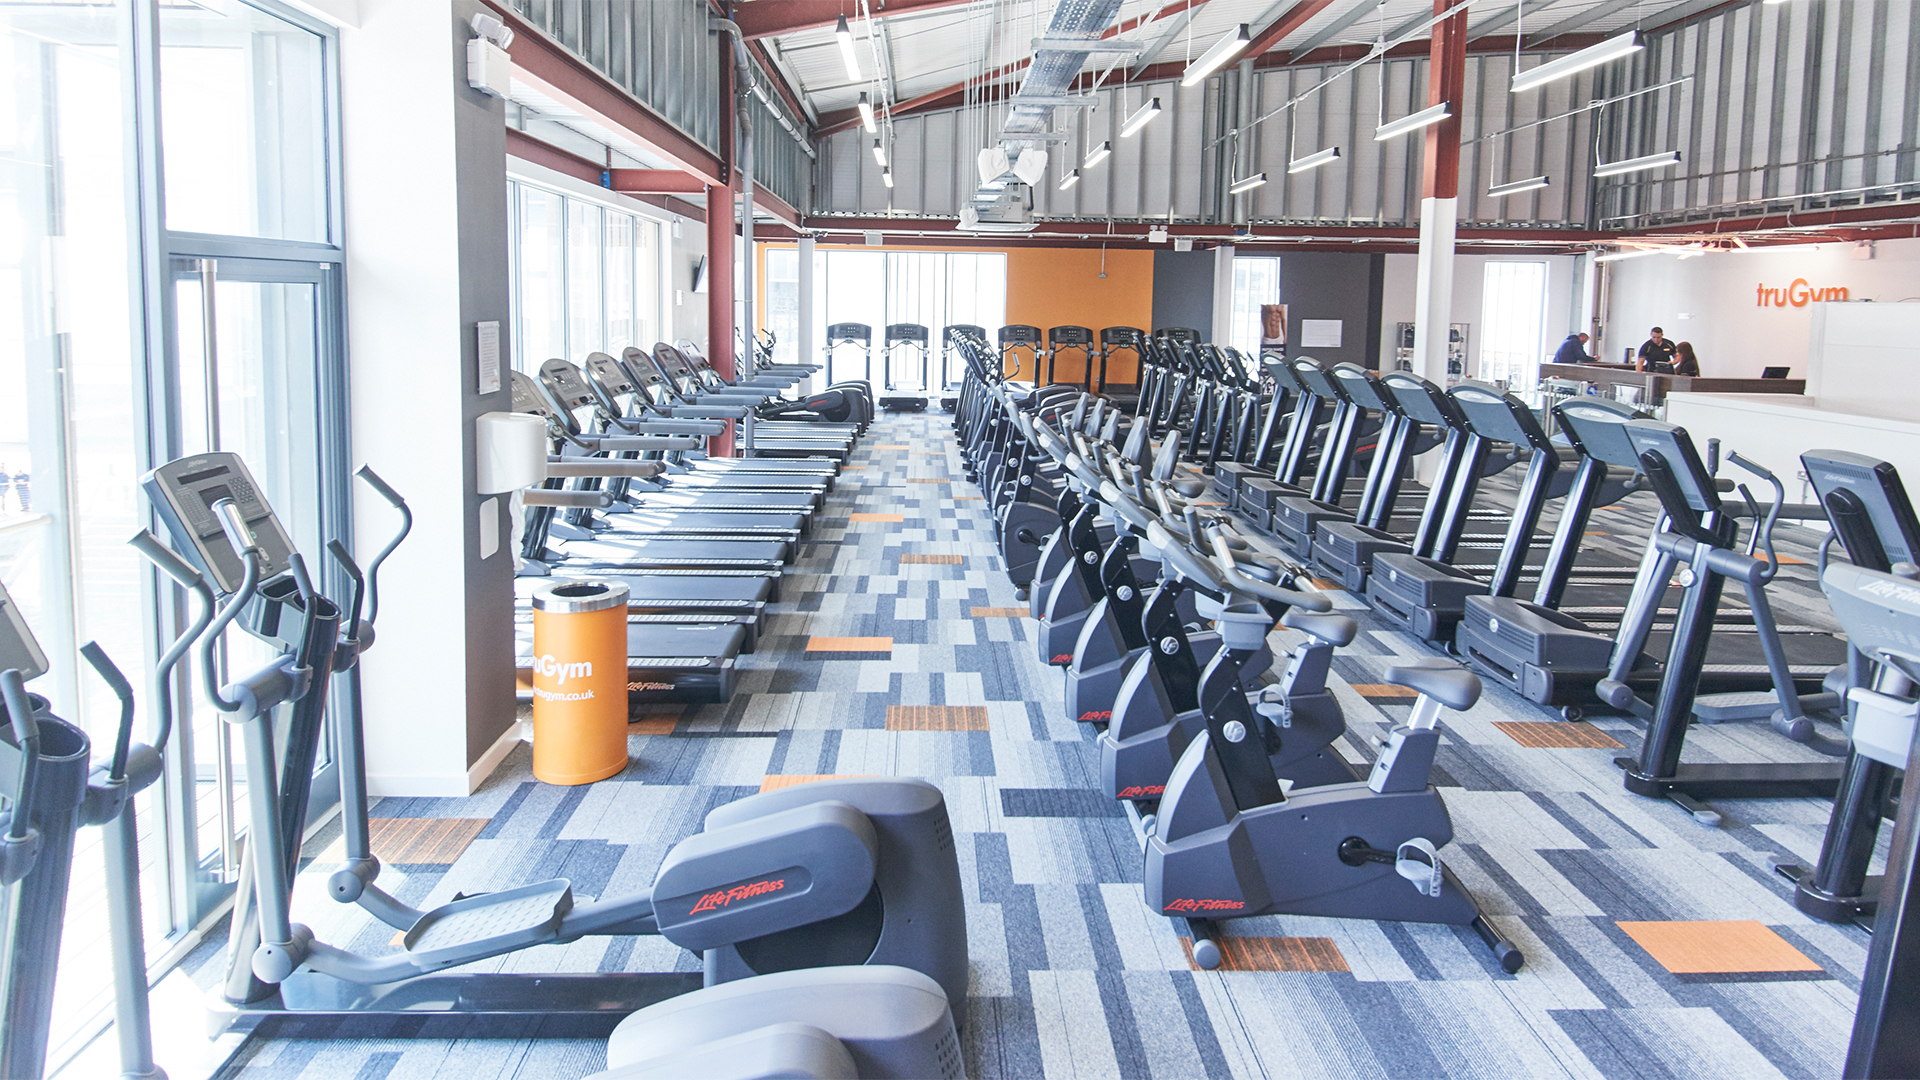 Cheap Gym In Uxbridge From 163 12 99 Per Month Trugym